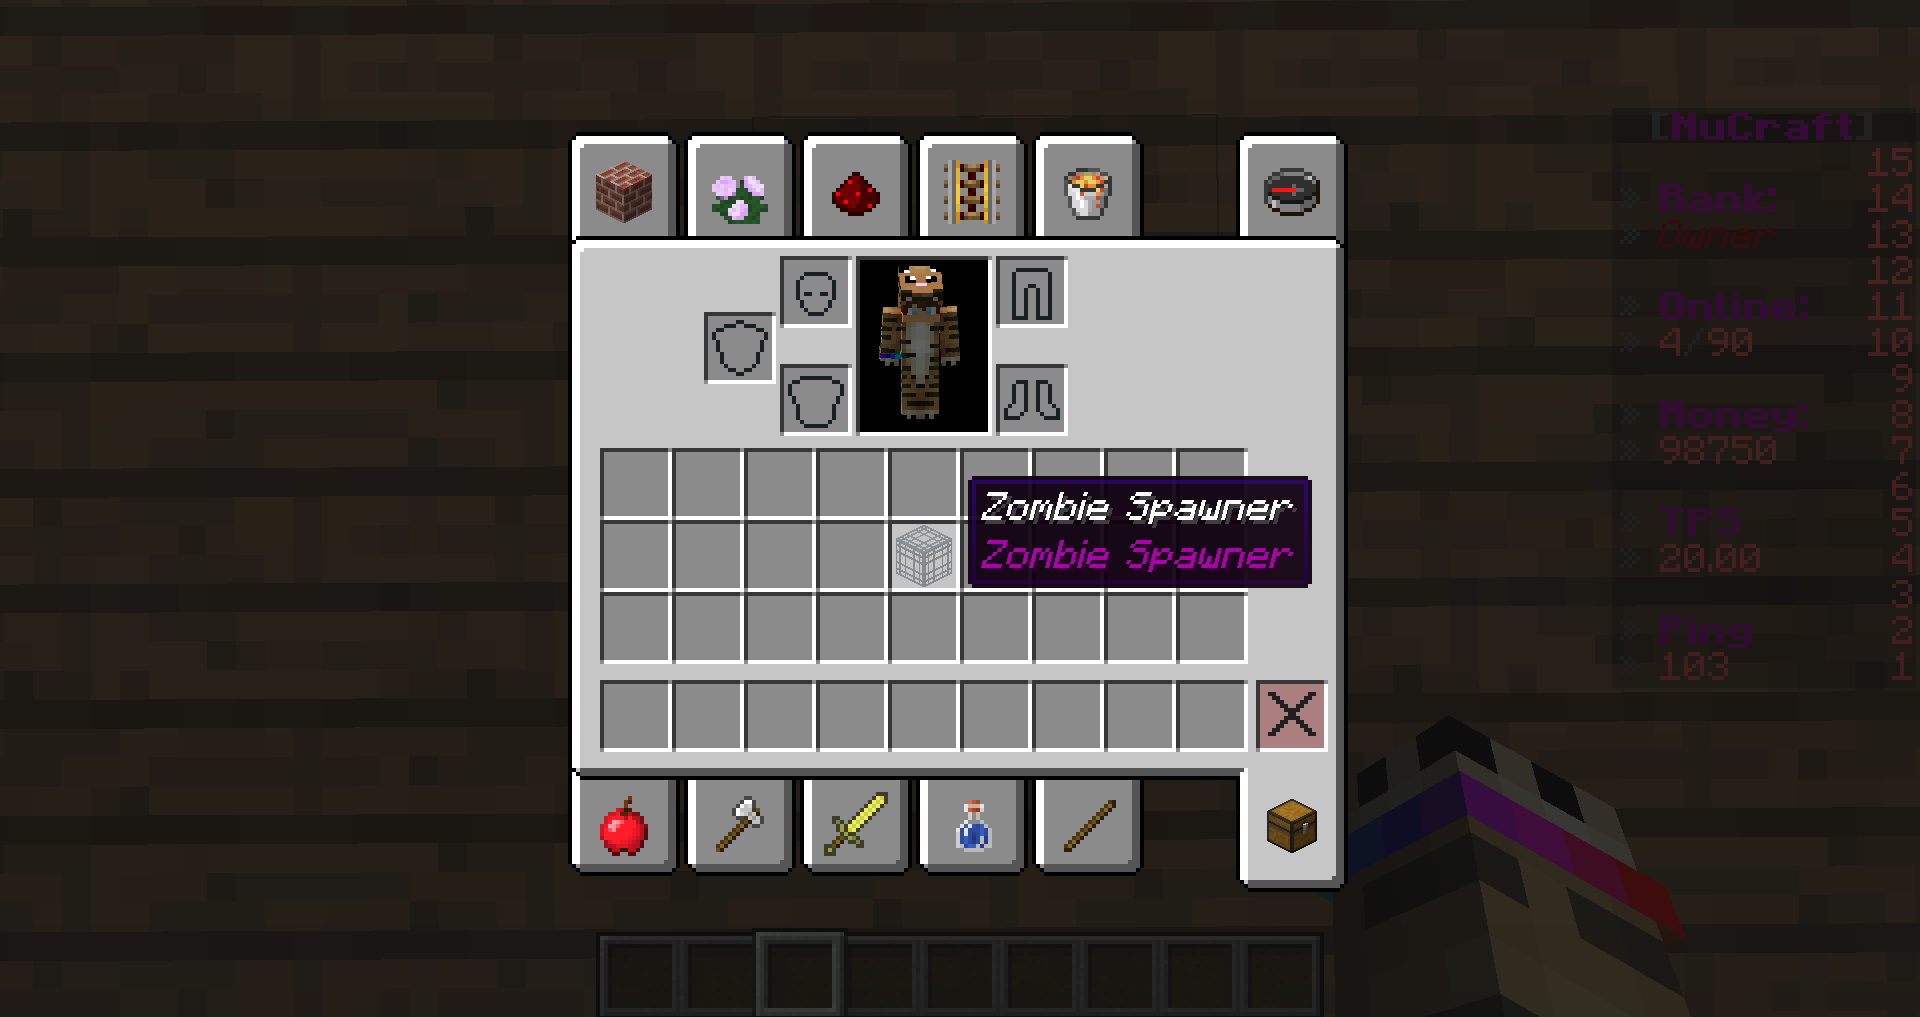 Spawners when mined.